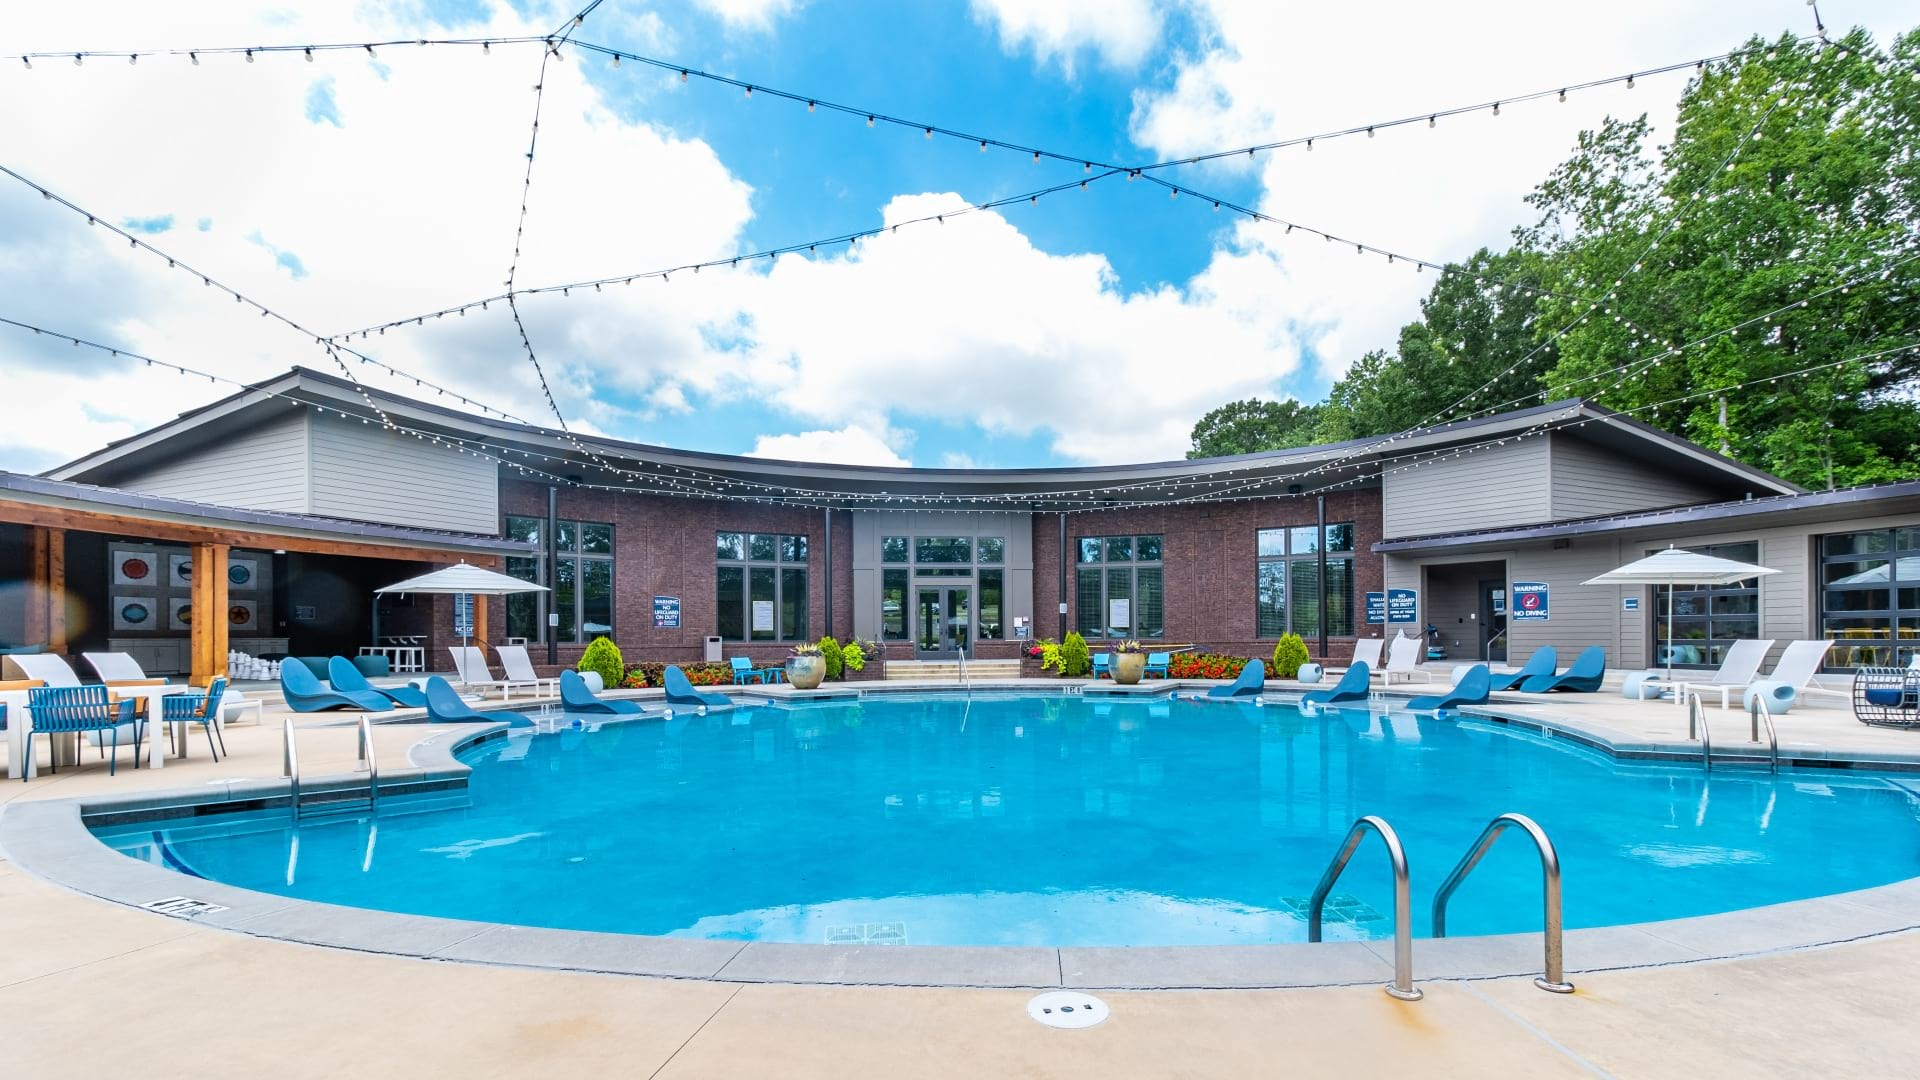 Resort style pool at Cortland Peachtree Corners